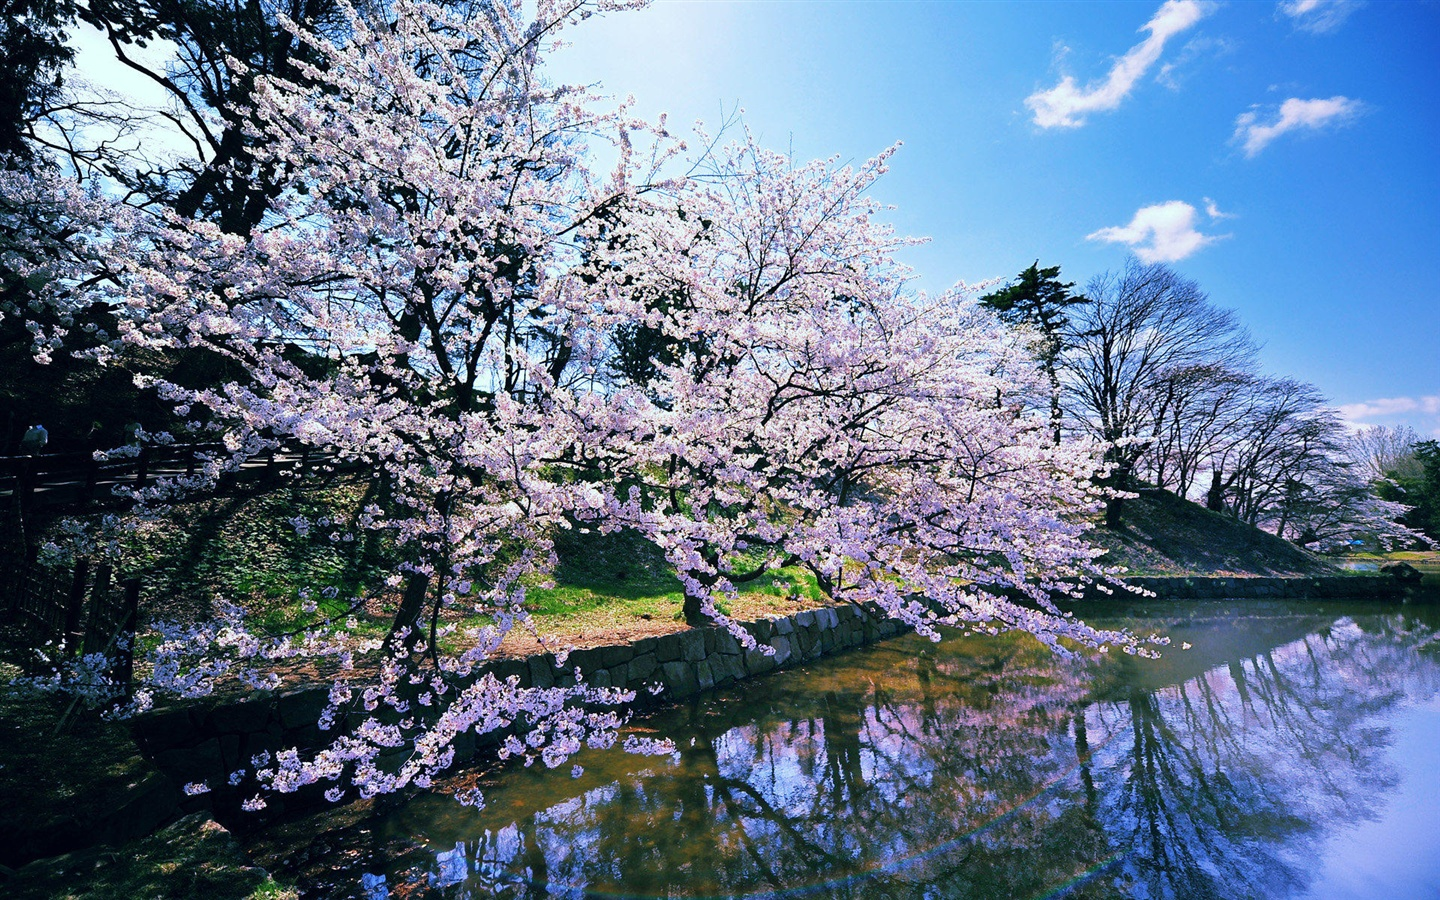 Japanese cherry blossoms wallpaper - 1440x900